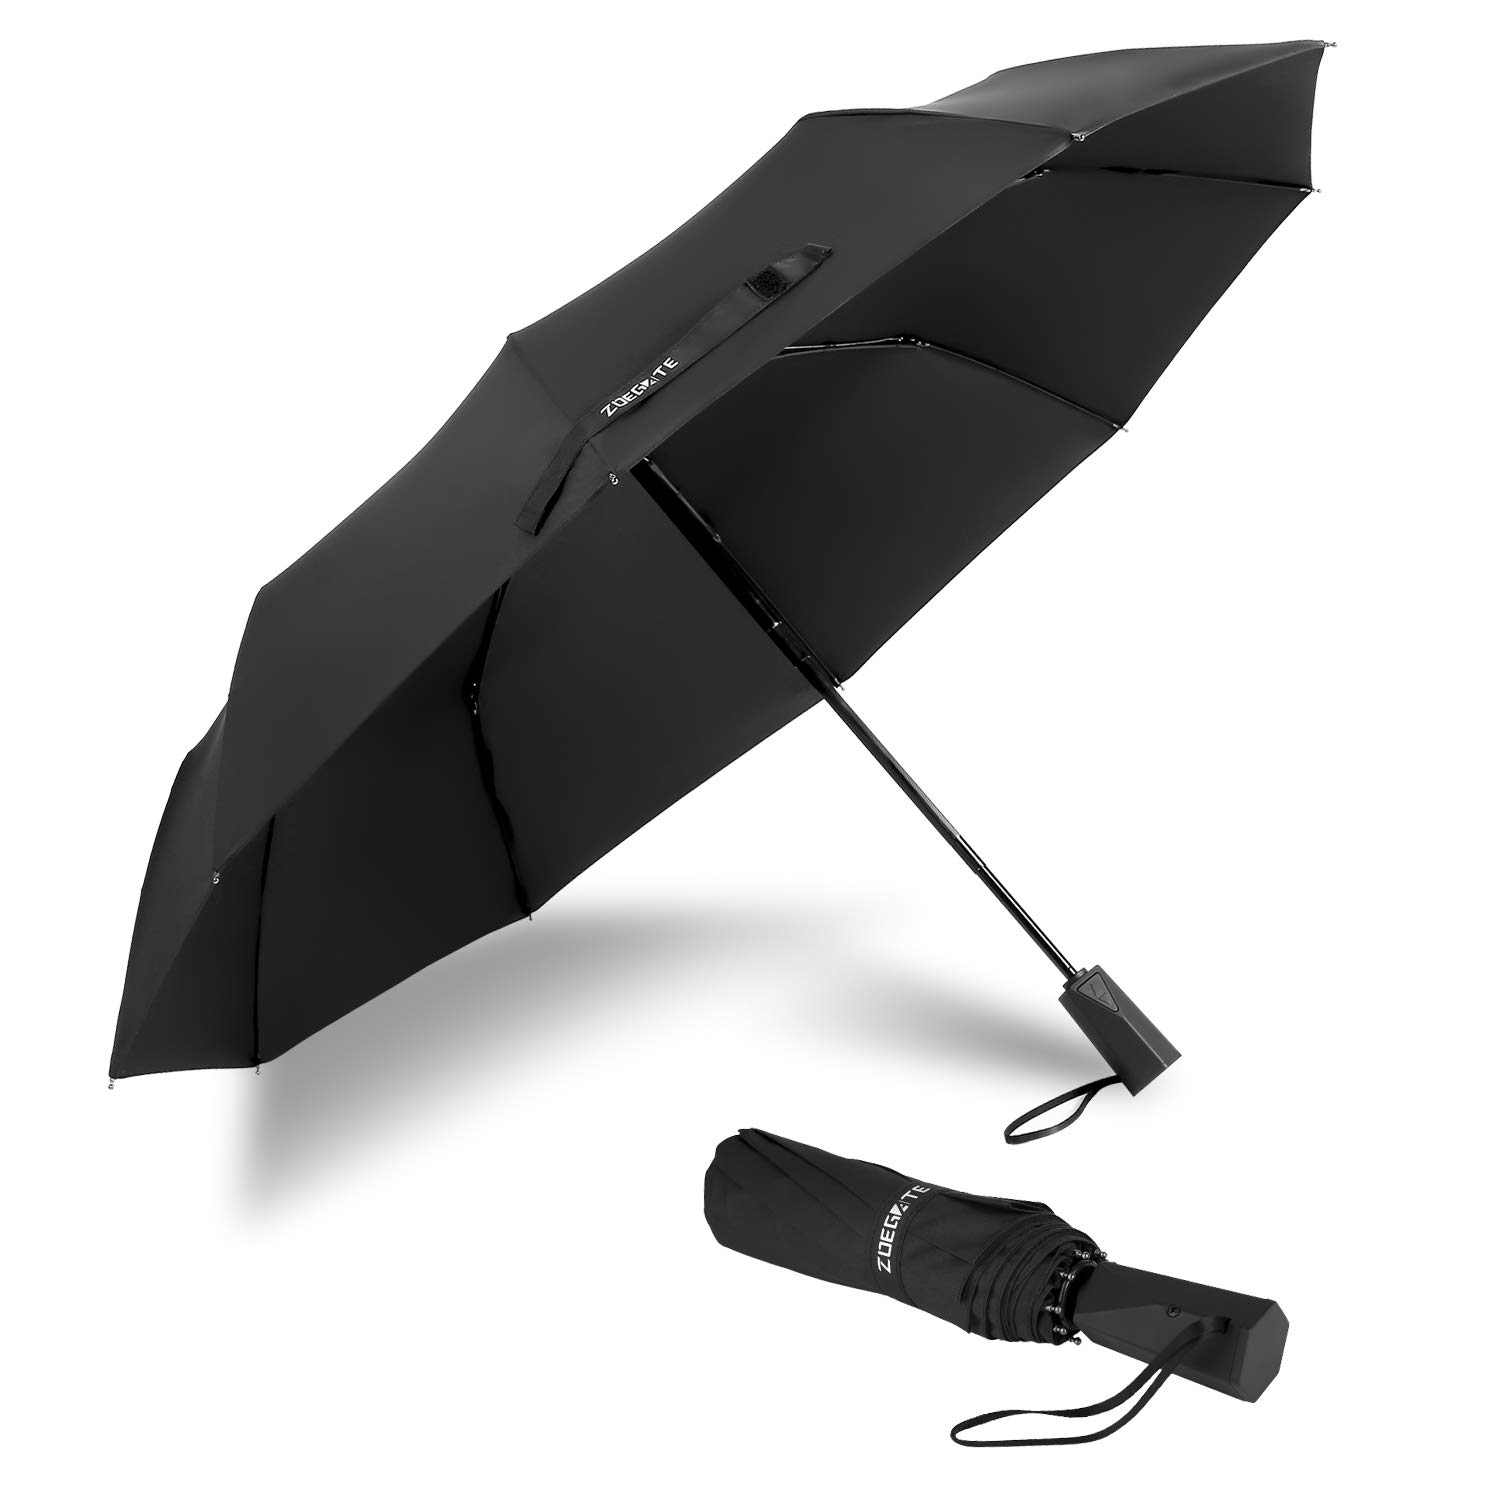 Speedsporting Travel Windproof Umbrella Unbreakable Automatic Compact Umbrellas Men/Women One Handed Operation, 10 Ribs Reinforced Windproof Fast Drying Umbrella, Stainless Steel & Fiberglass Construction Slip-Proof Handle for Easy Carry